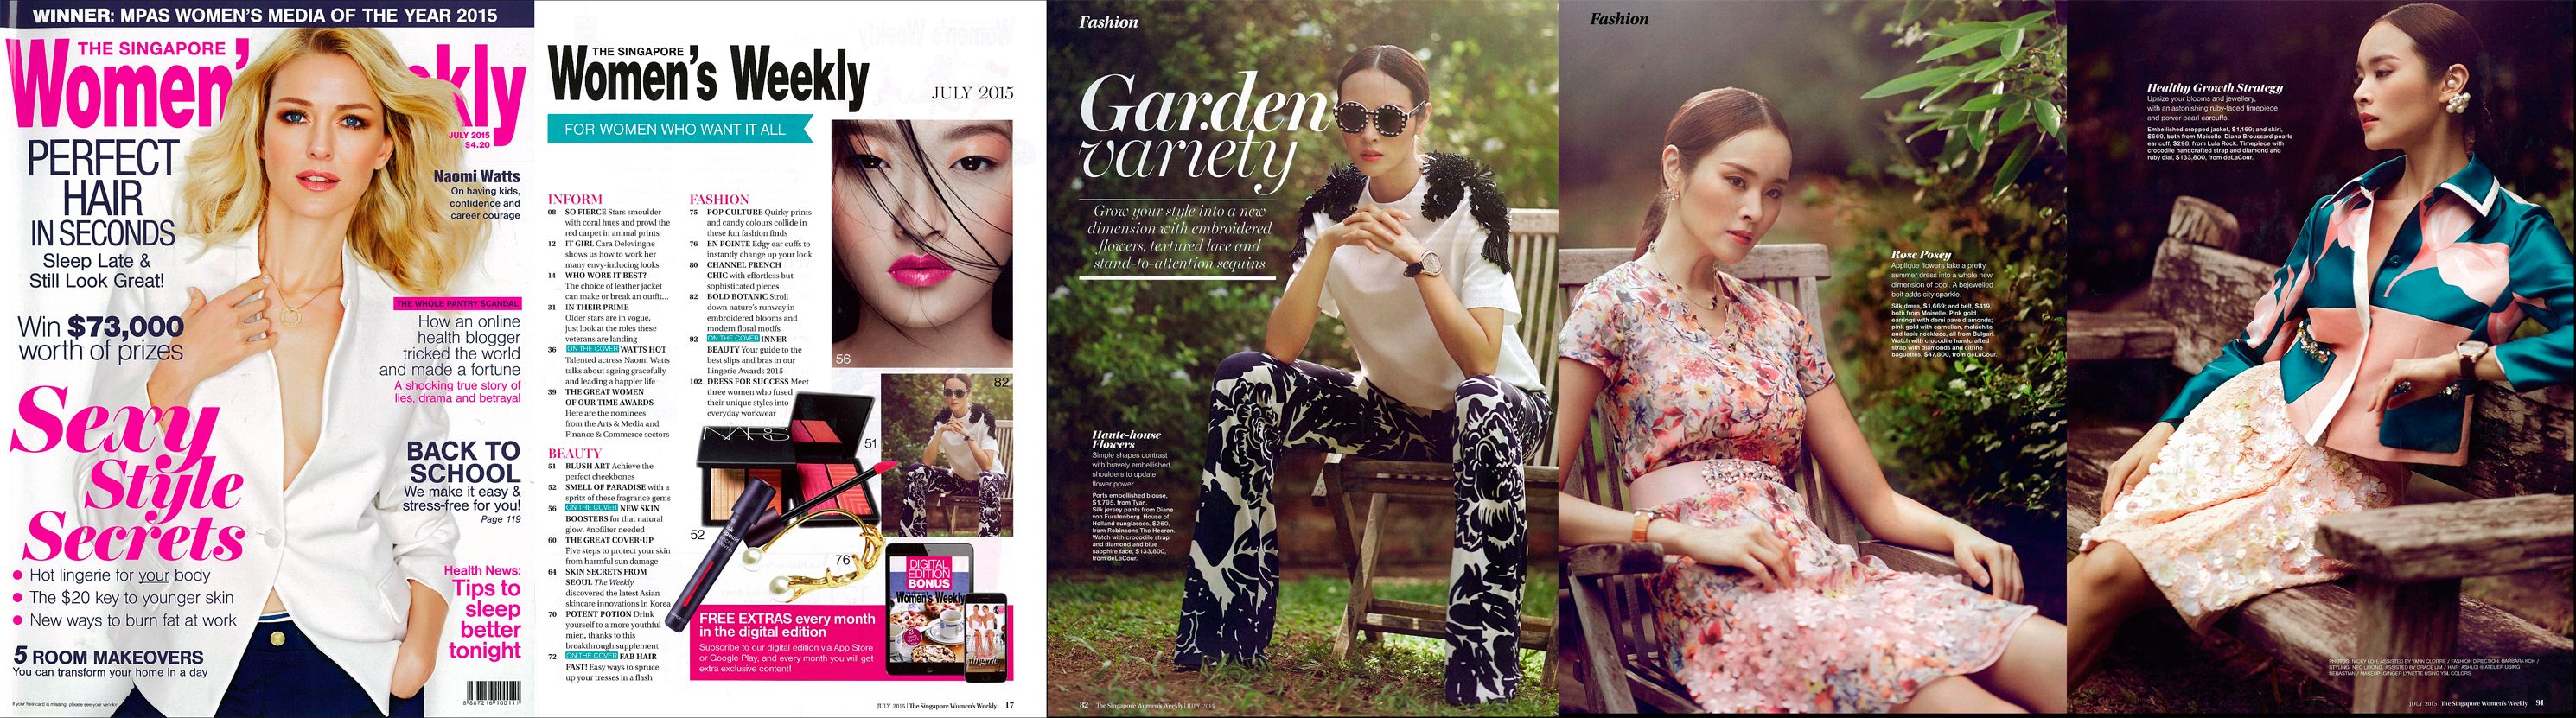 Womens_Weekly, Singapore 2015. deLaCour Watches